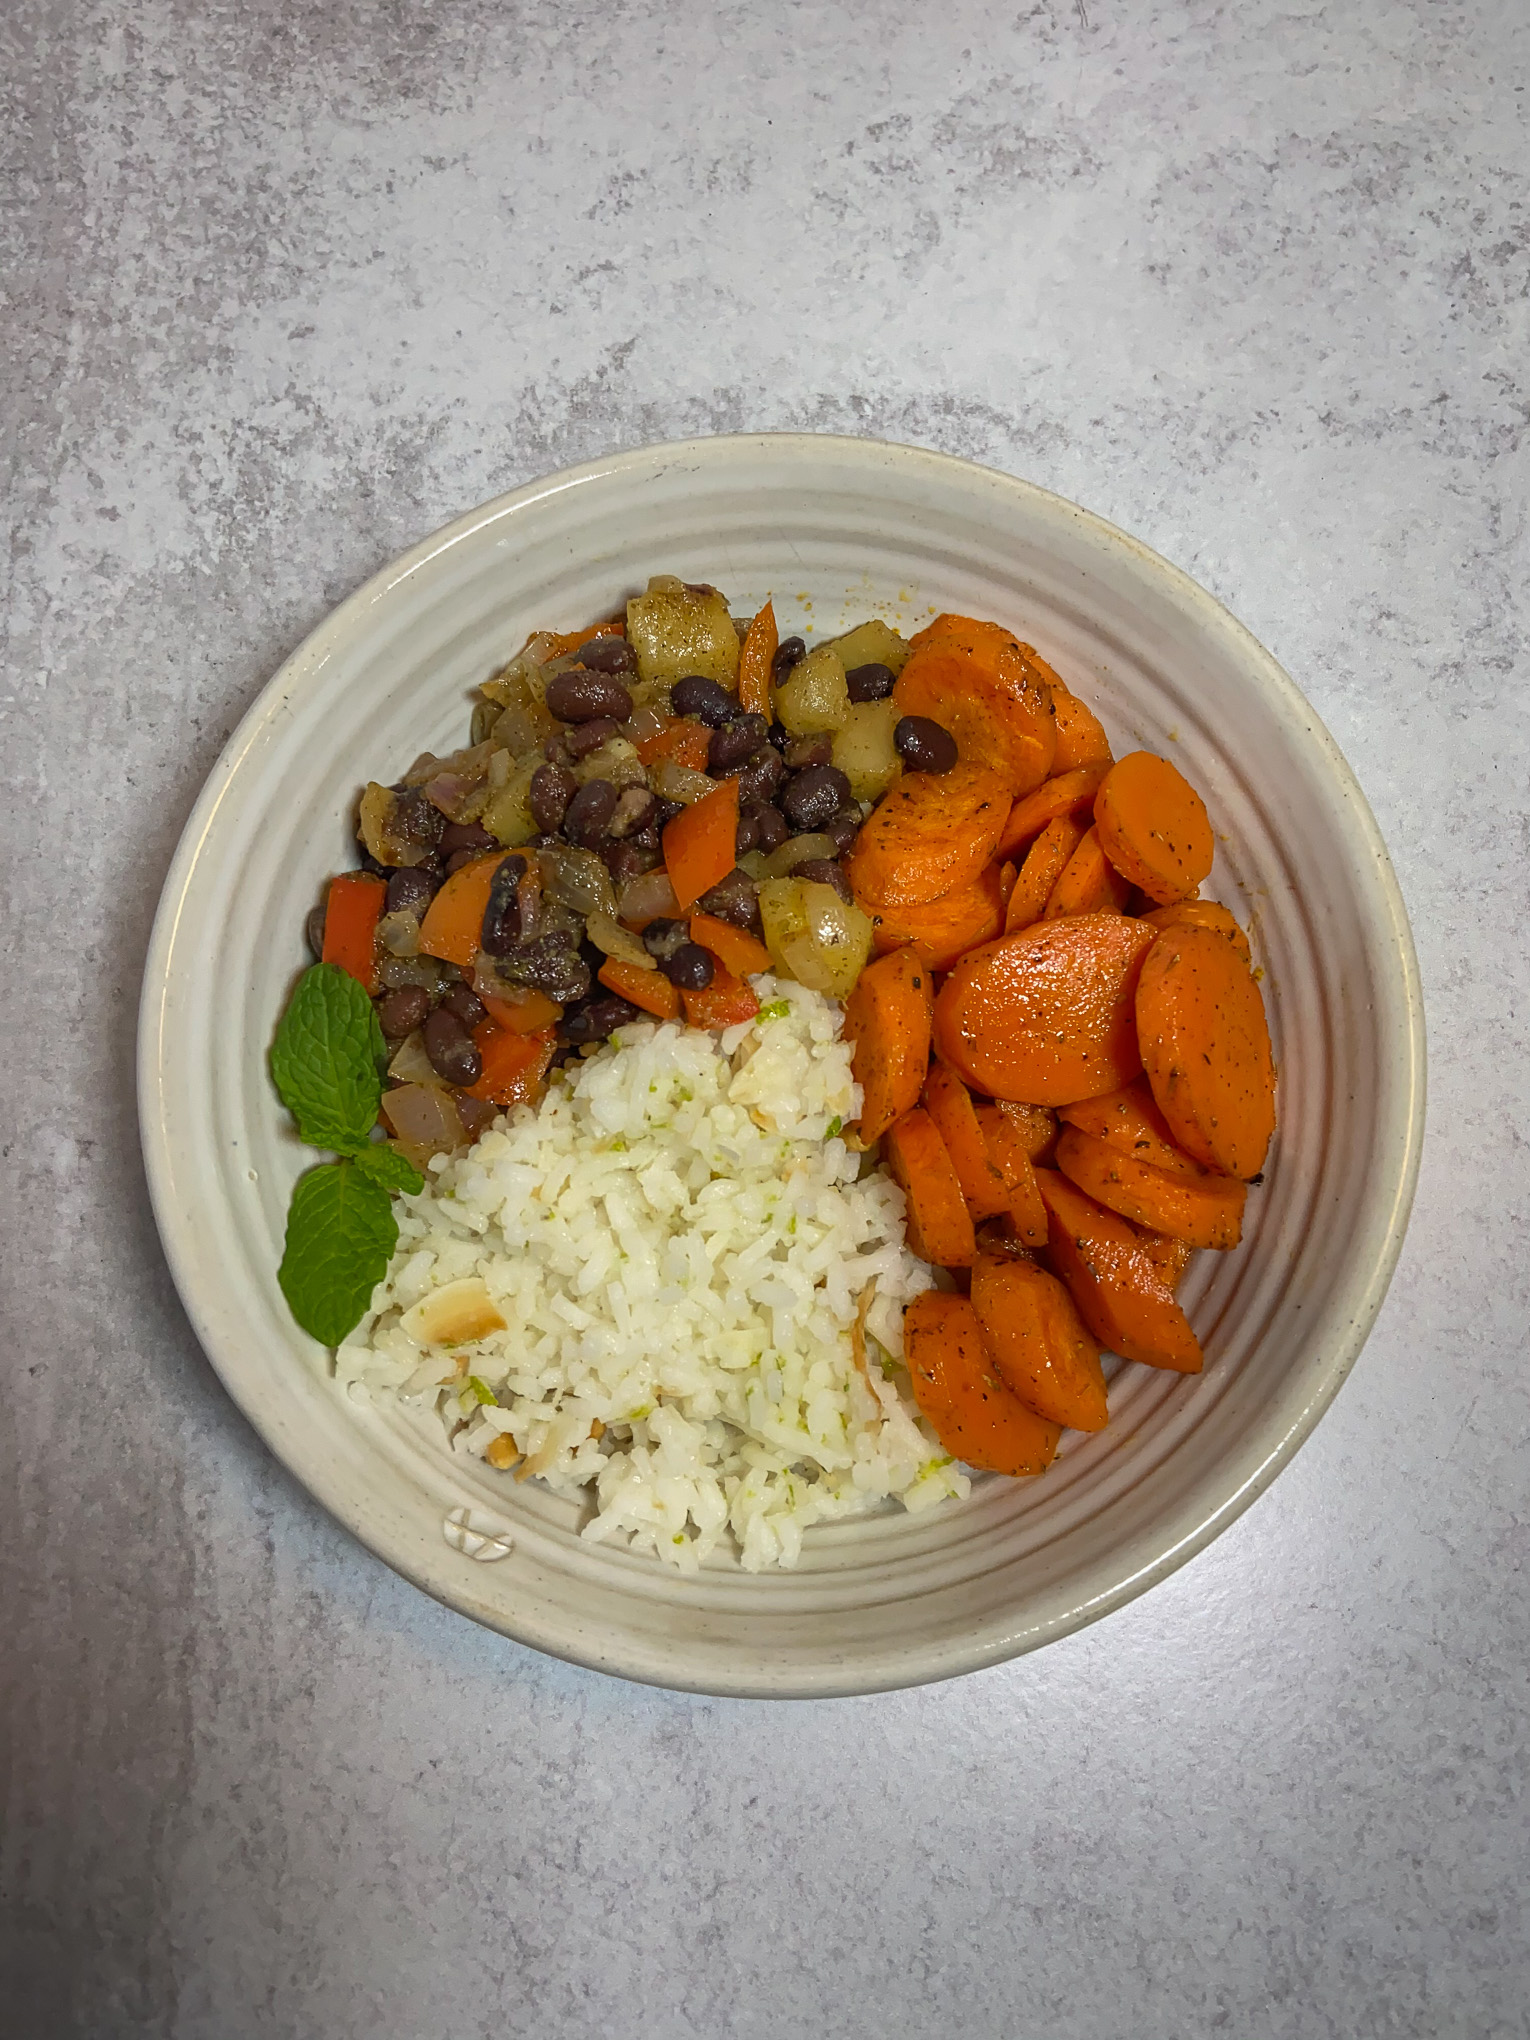 Bowl of rice, beans and carrots